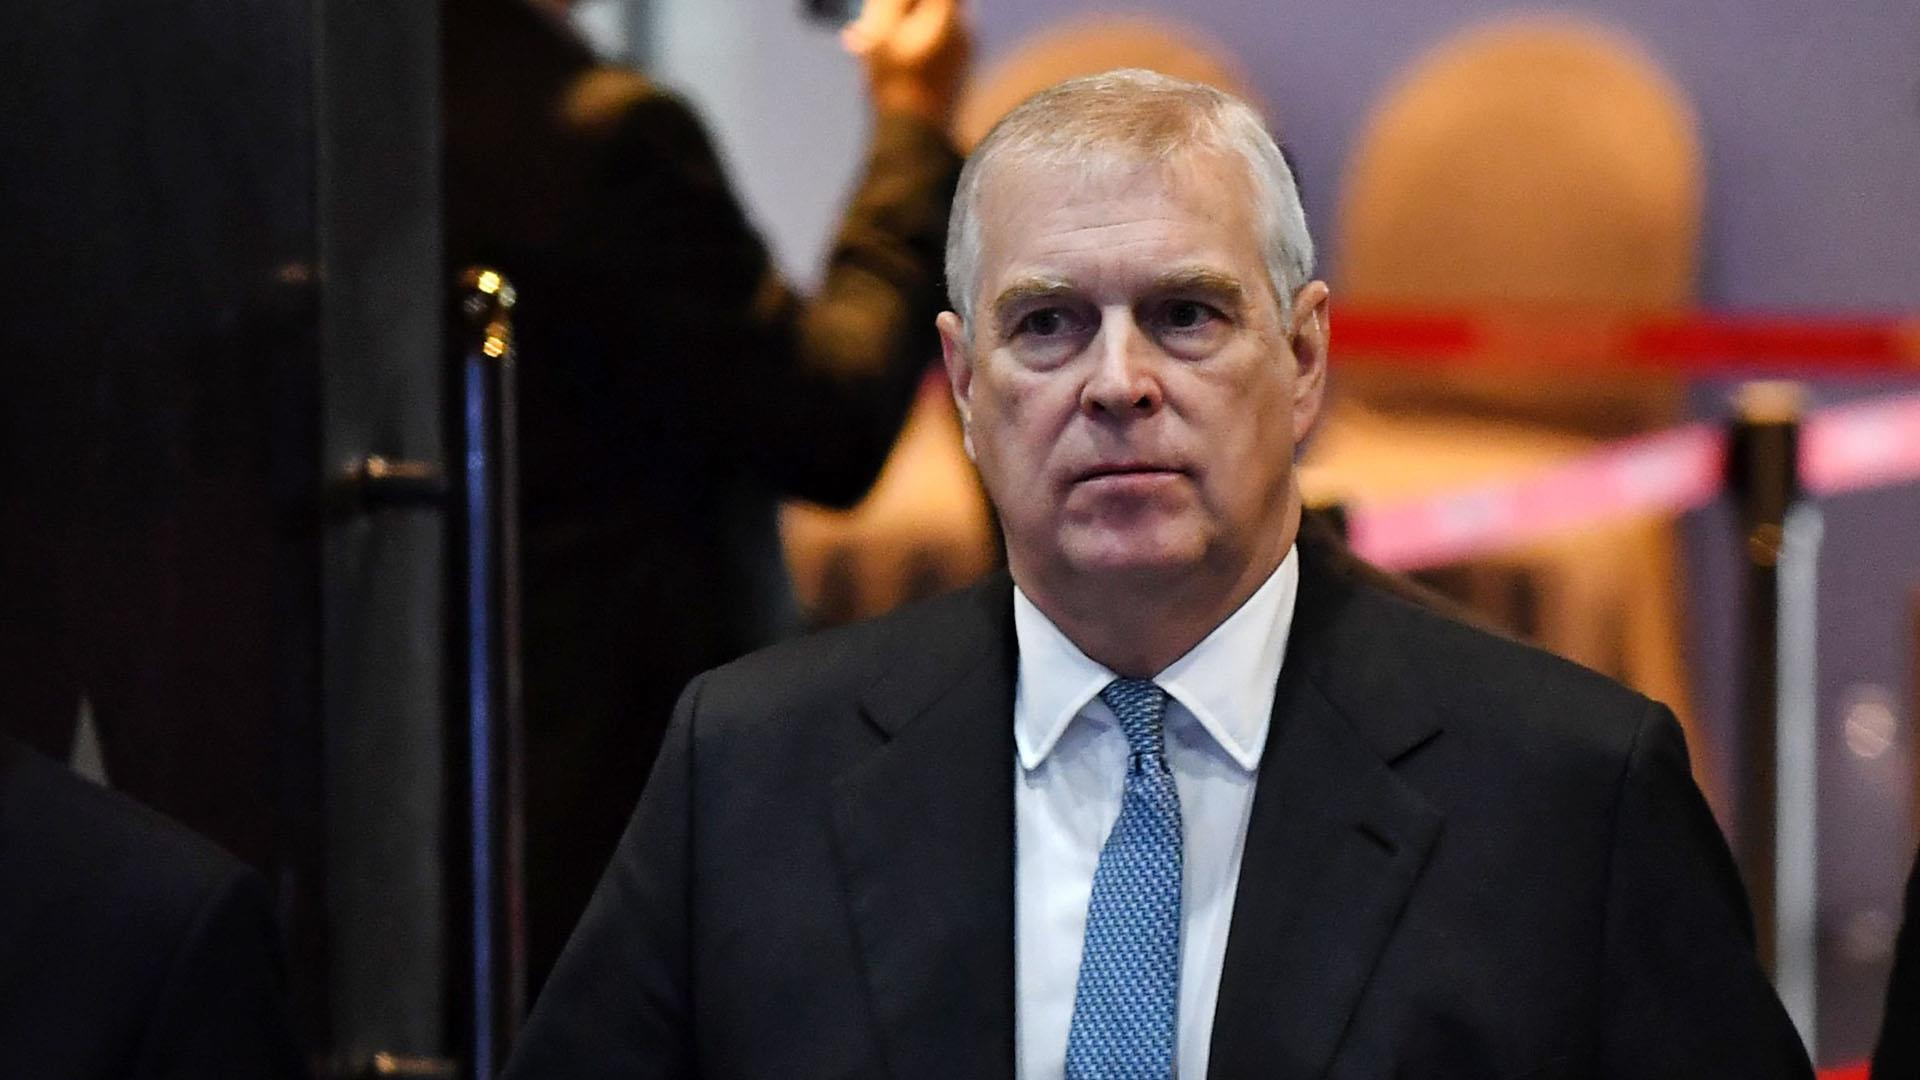 Prince Andrew S Interview About Jeffrey Epstein Virginia Roberts